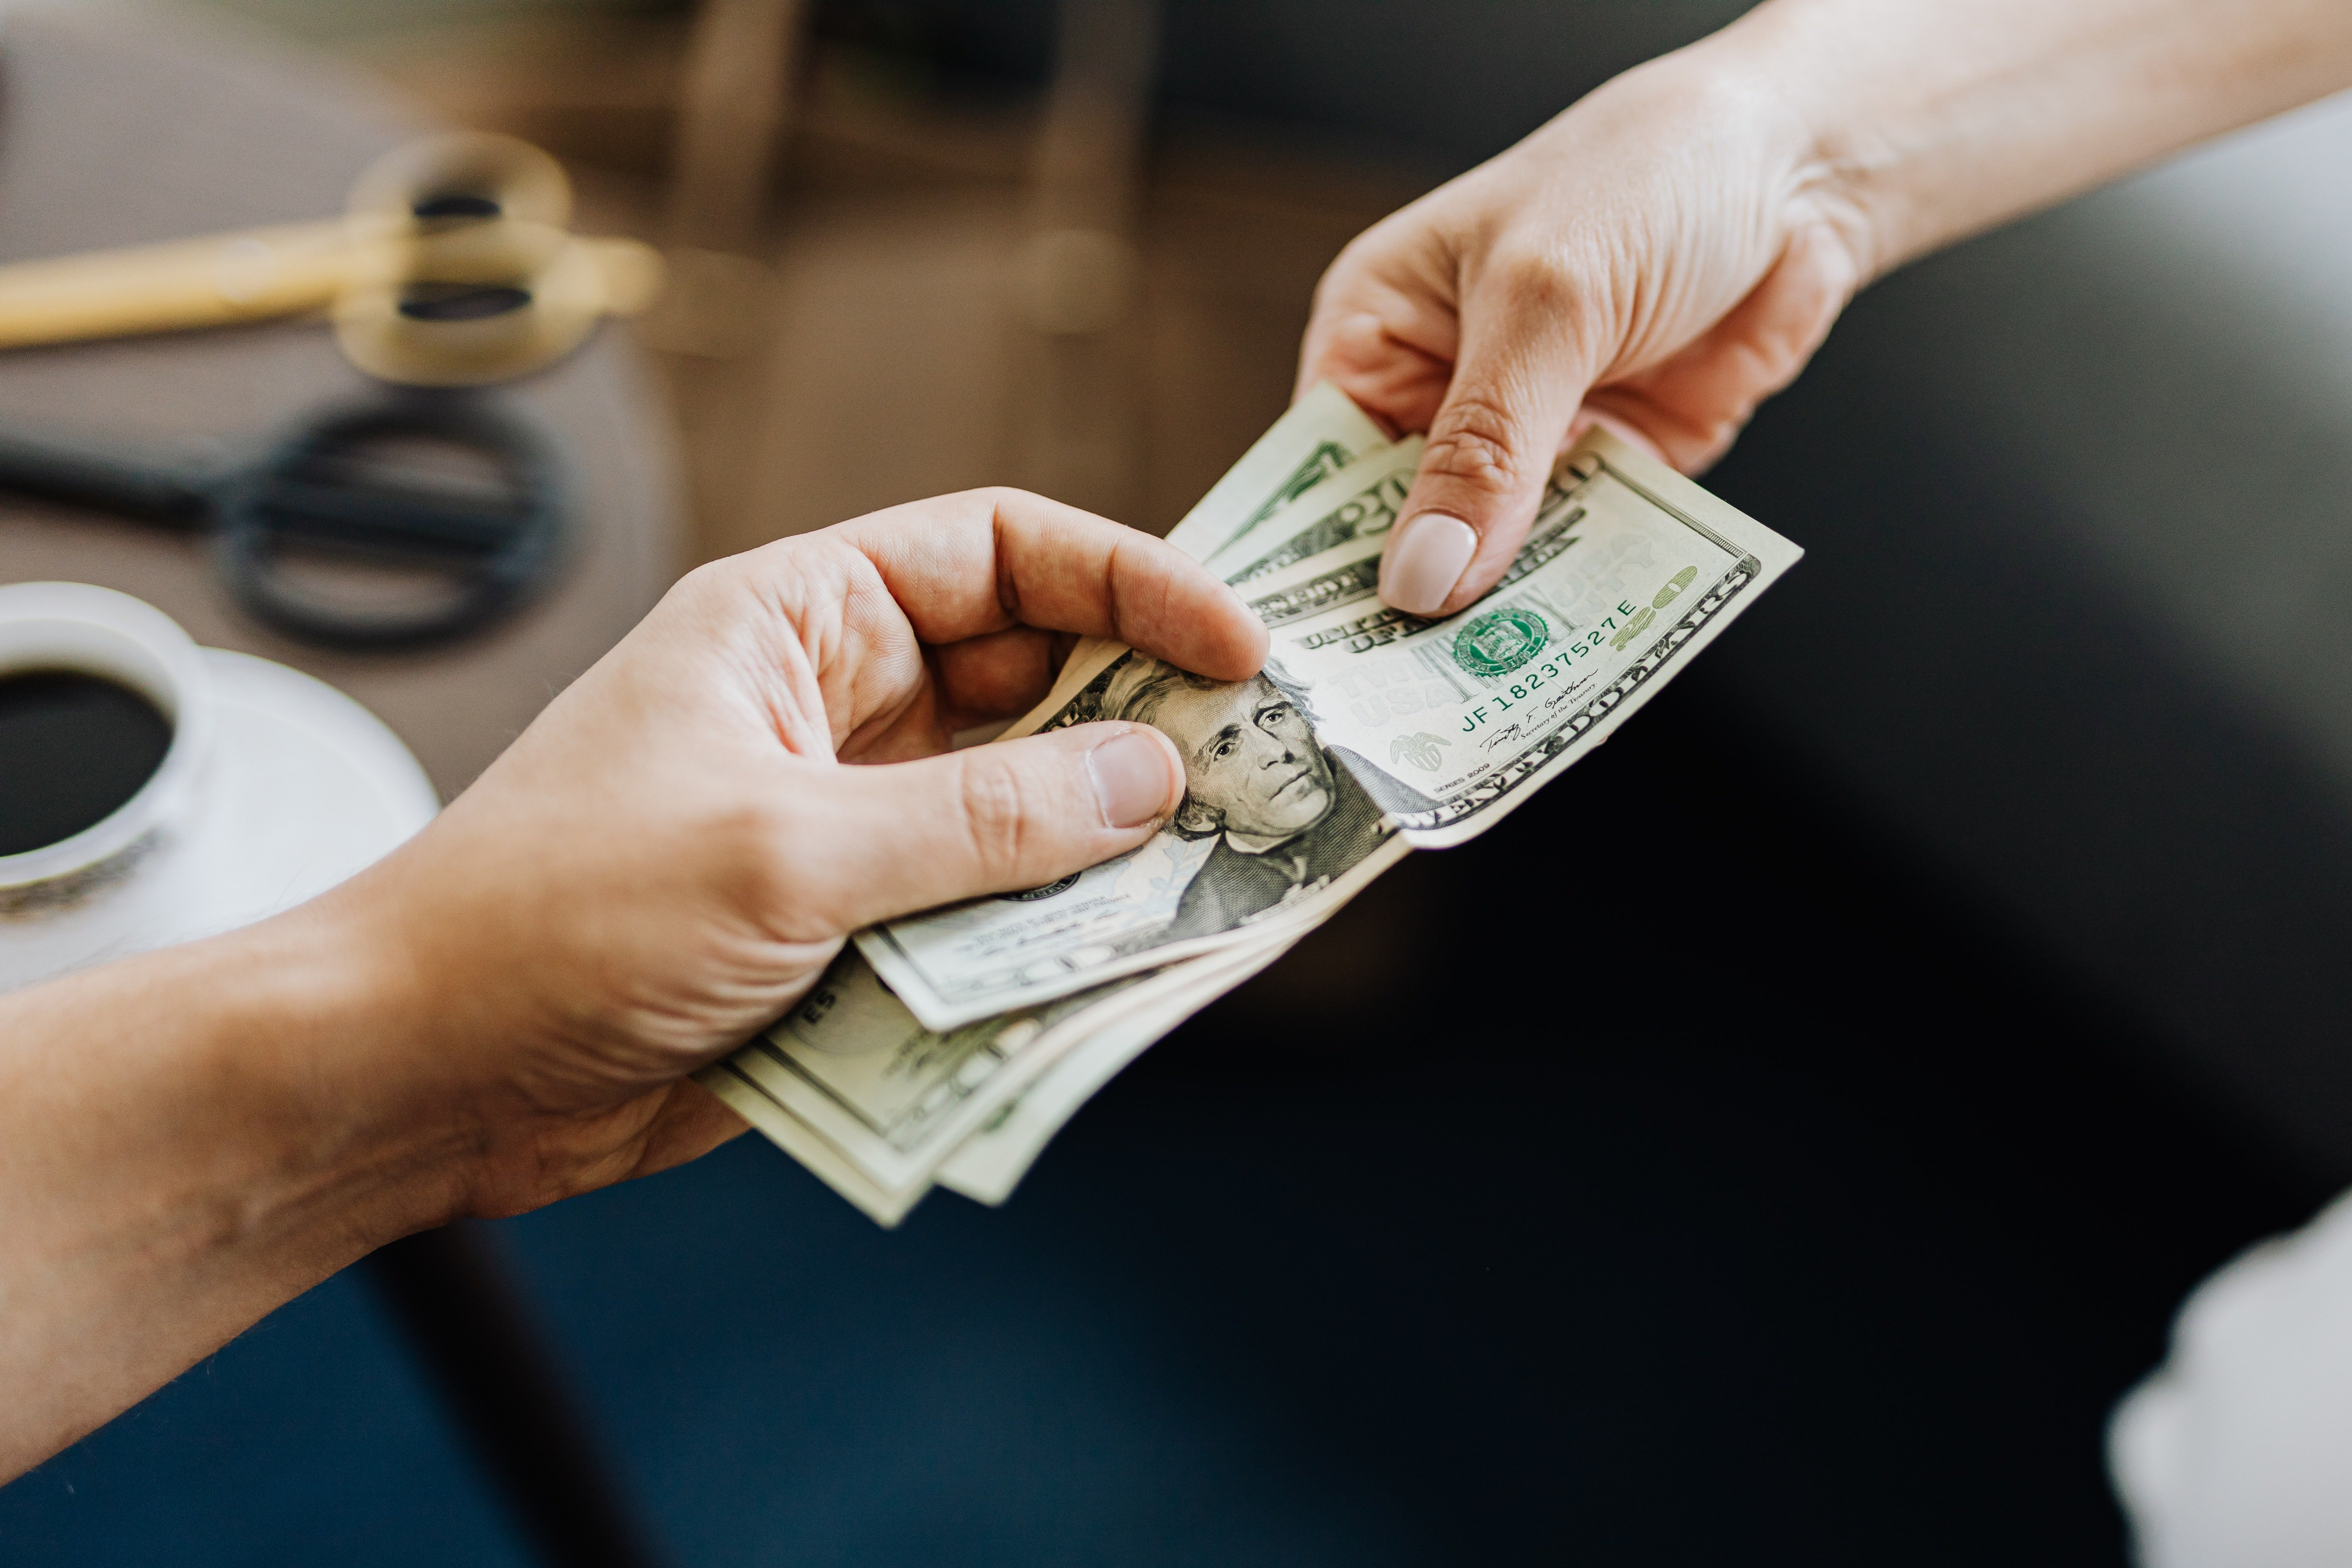 Two hands holding American dollars   Photo: Pexels